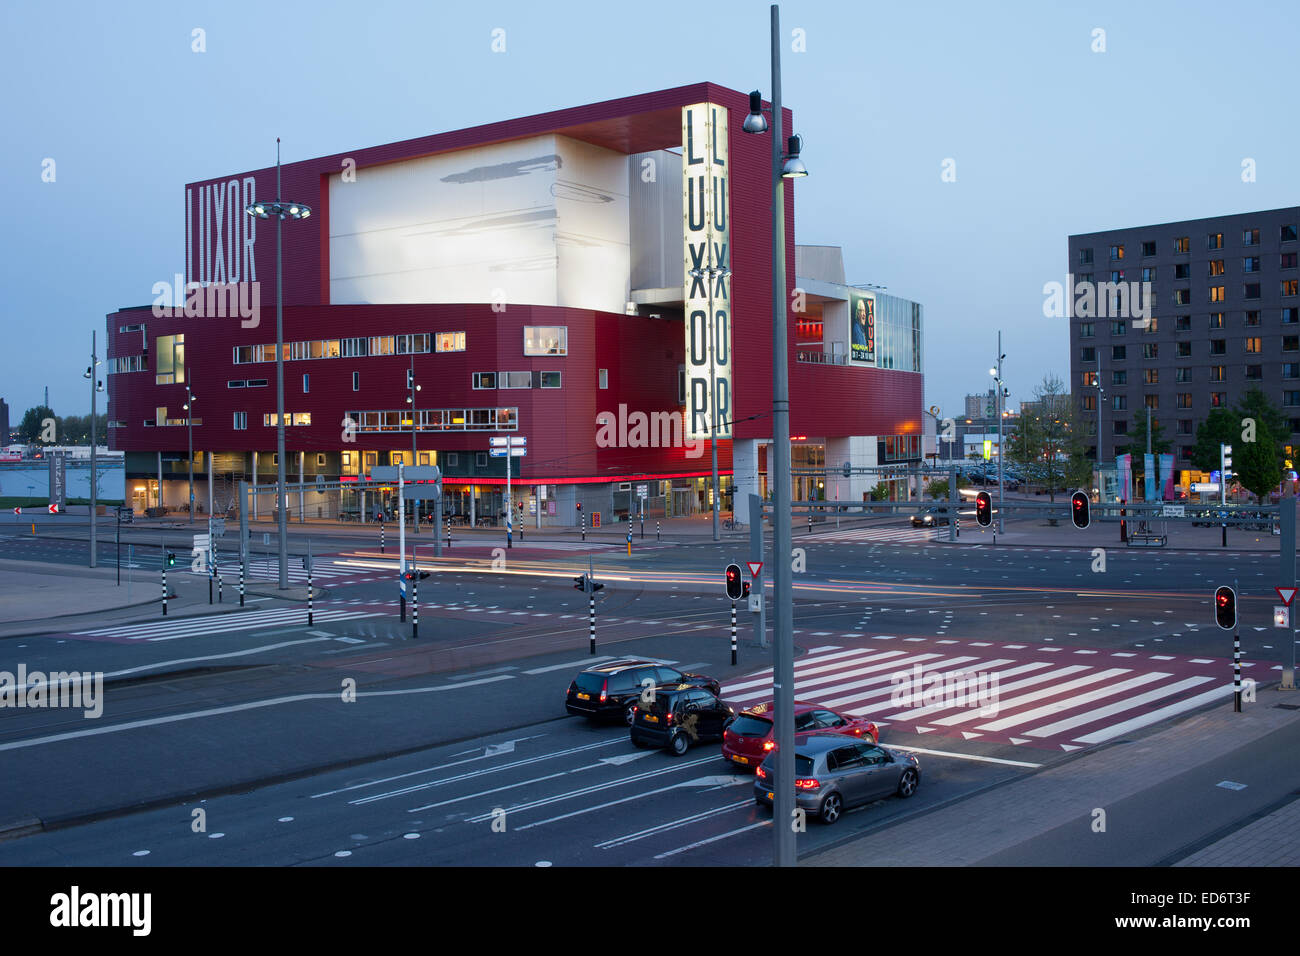 The New Luxor Theater contemporary, modern architecture in the city centre of Rotterdam in Holland, Netherlands. - Stock Image